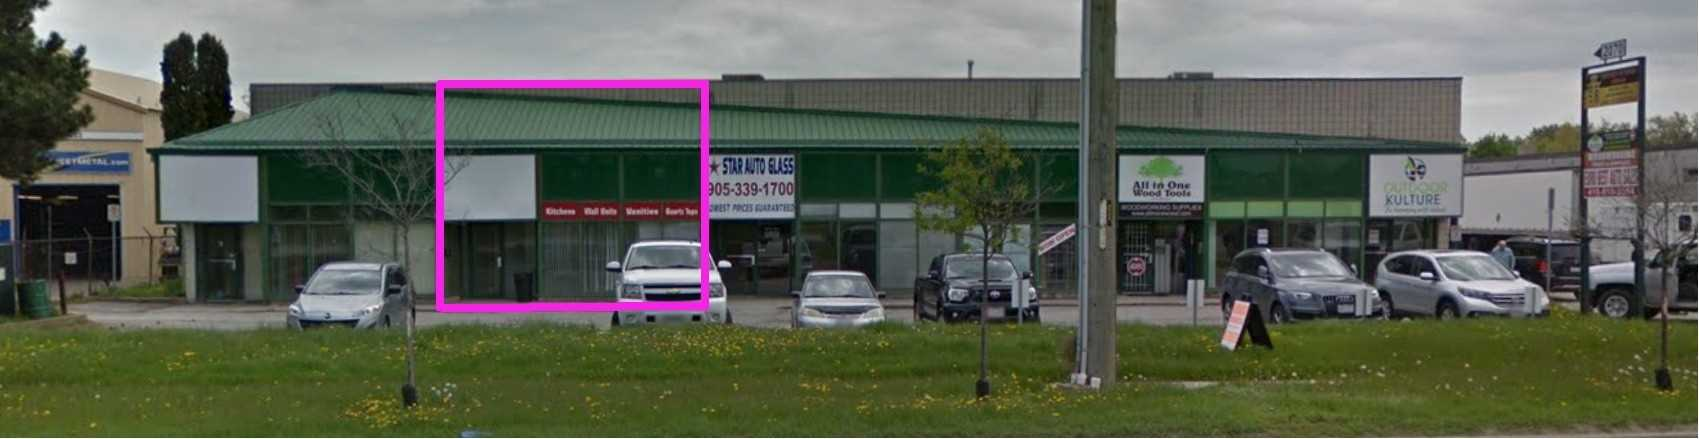 2070 Speers Rd, Oakville, L6L 2X8, ,1 BathroomBathrooms,Industrial,For Lease,Speers,W4677092